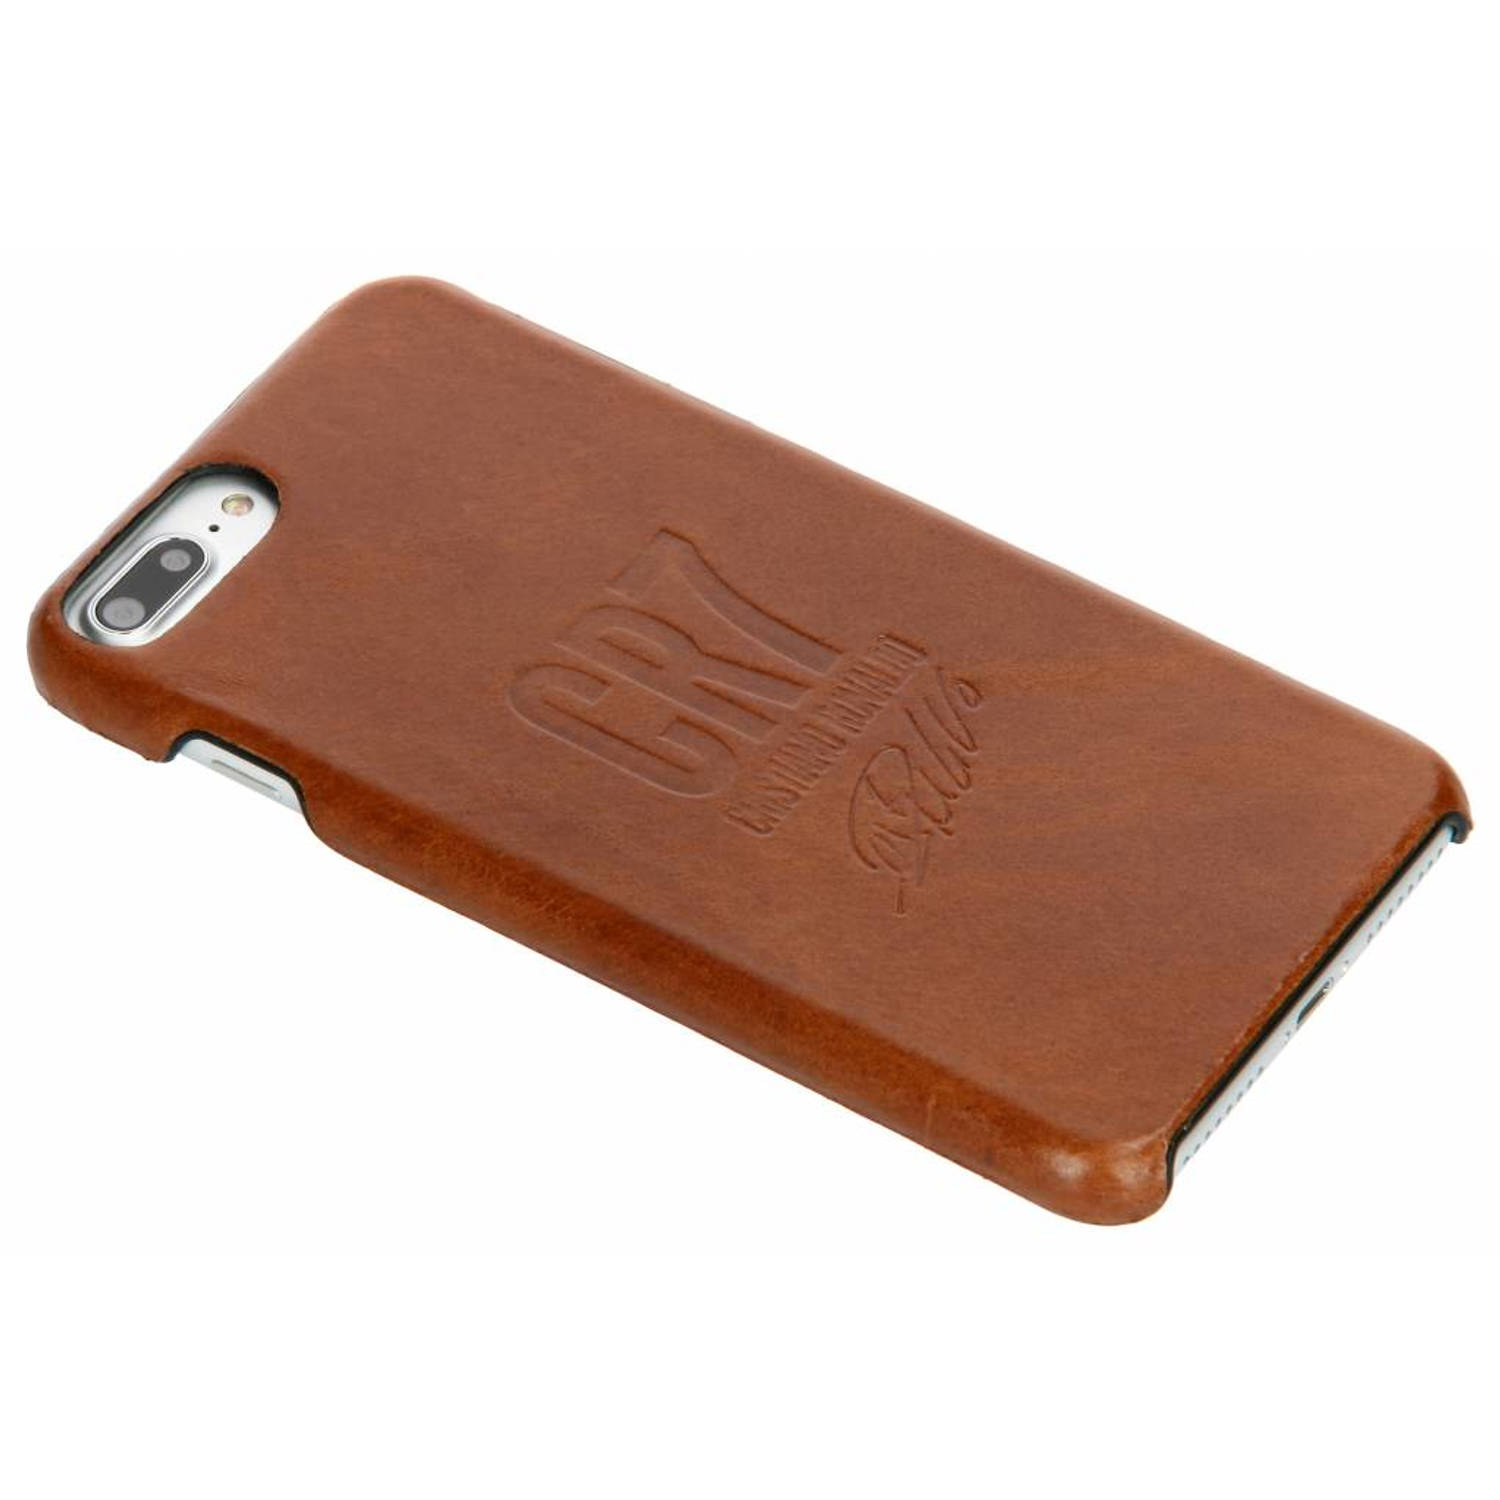 Bruine CR7 Signature Edition Leather Case voor de iPhone 8 Plus / 7 Plus / 6(s) Plus